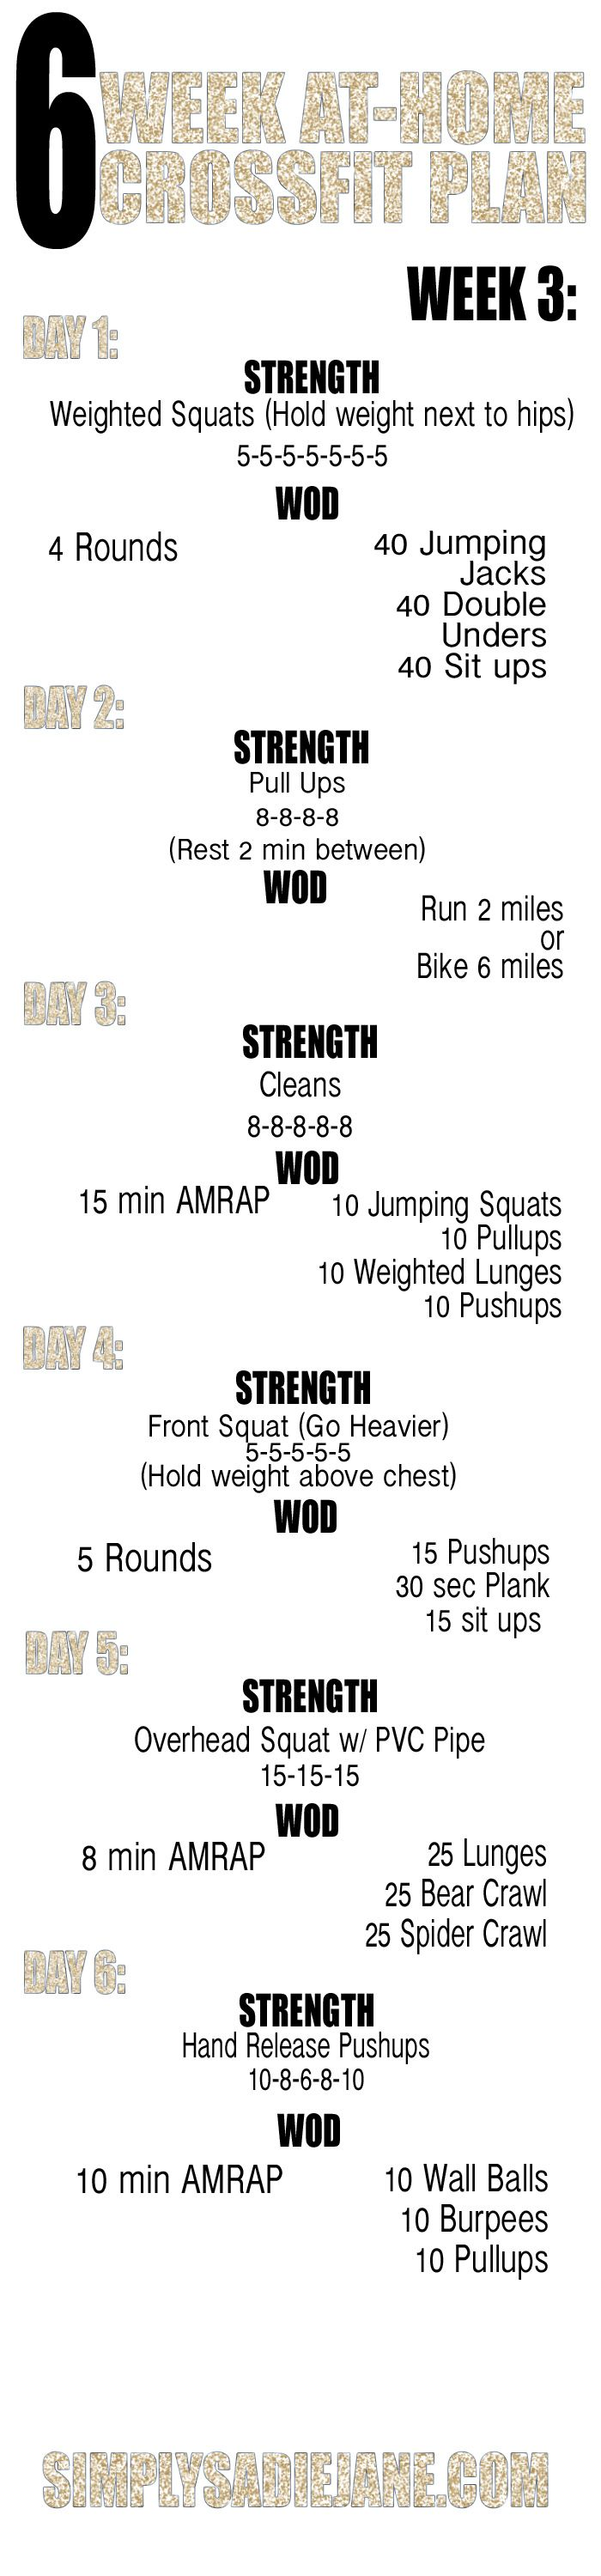 172 best Exercise images on Pinterest | Physical activities ...